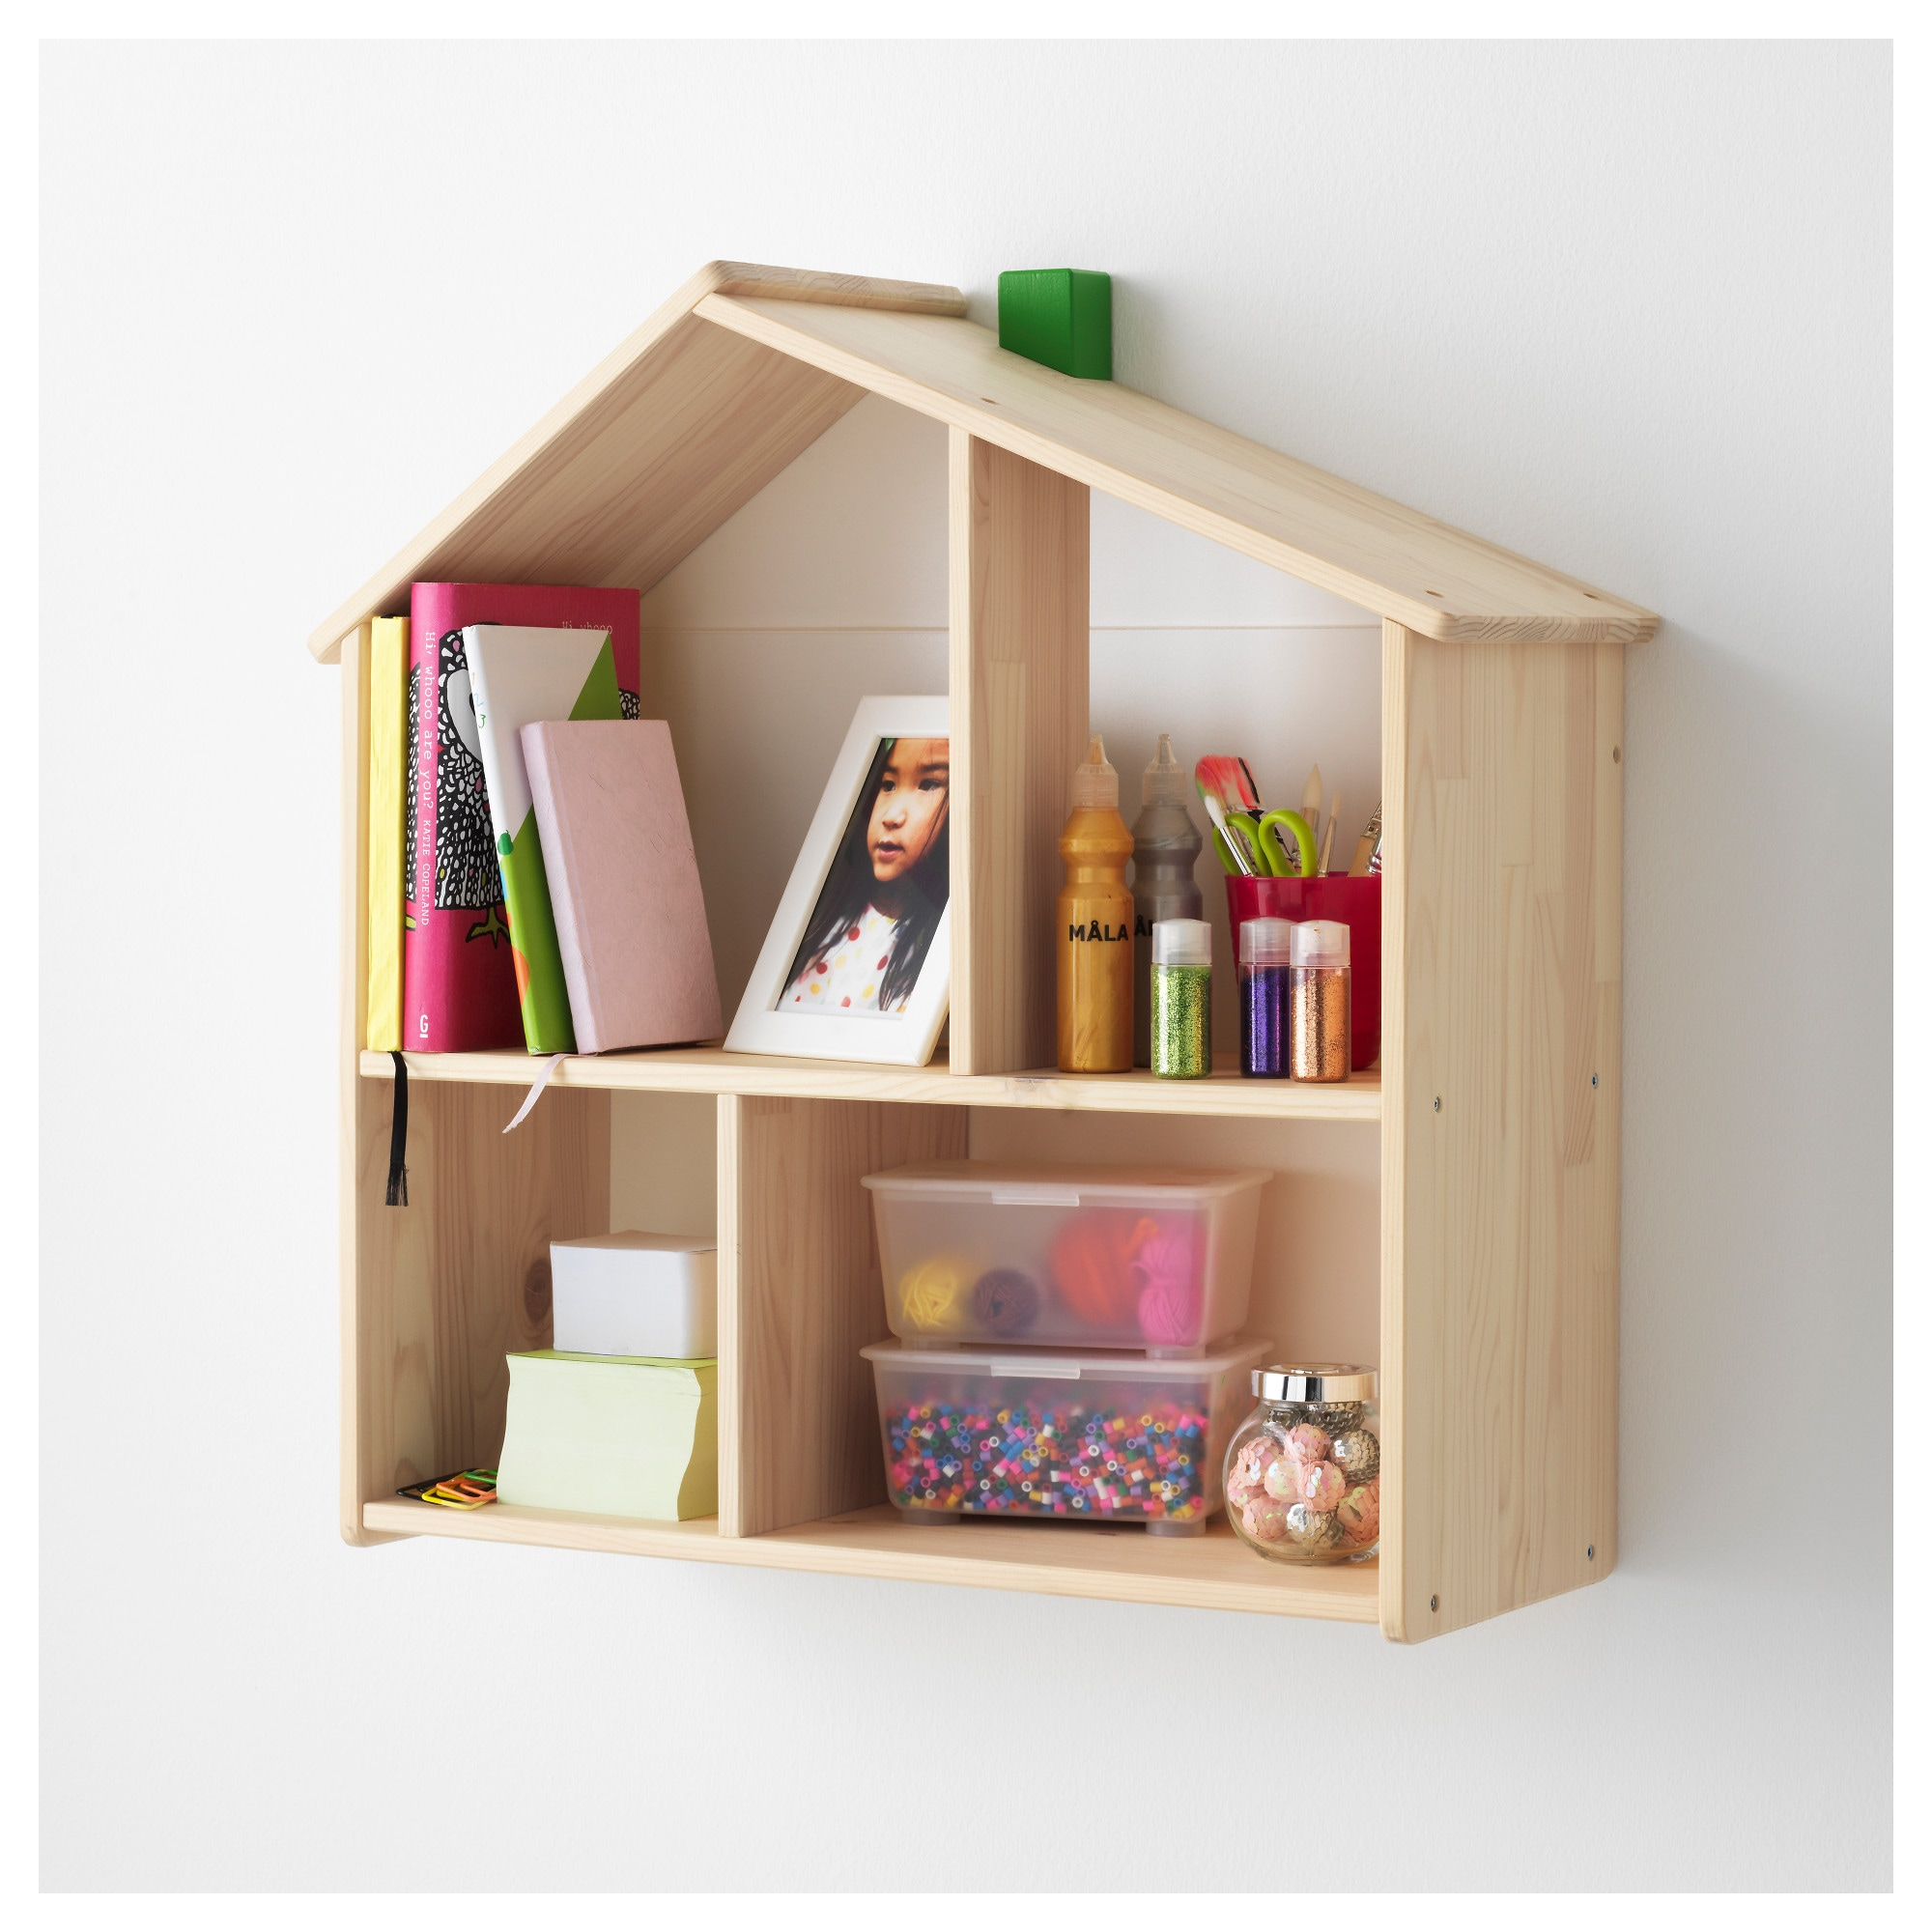 FLISAT Doll house/wall shelf - IKEA